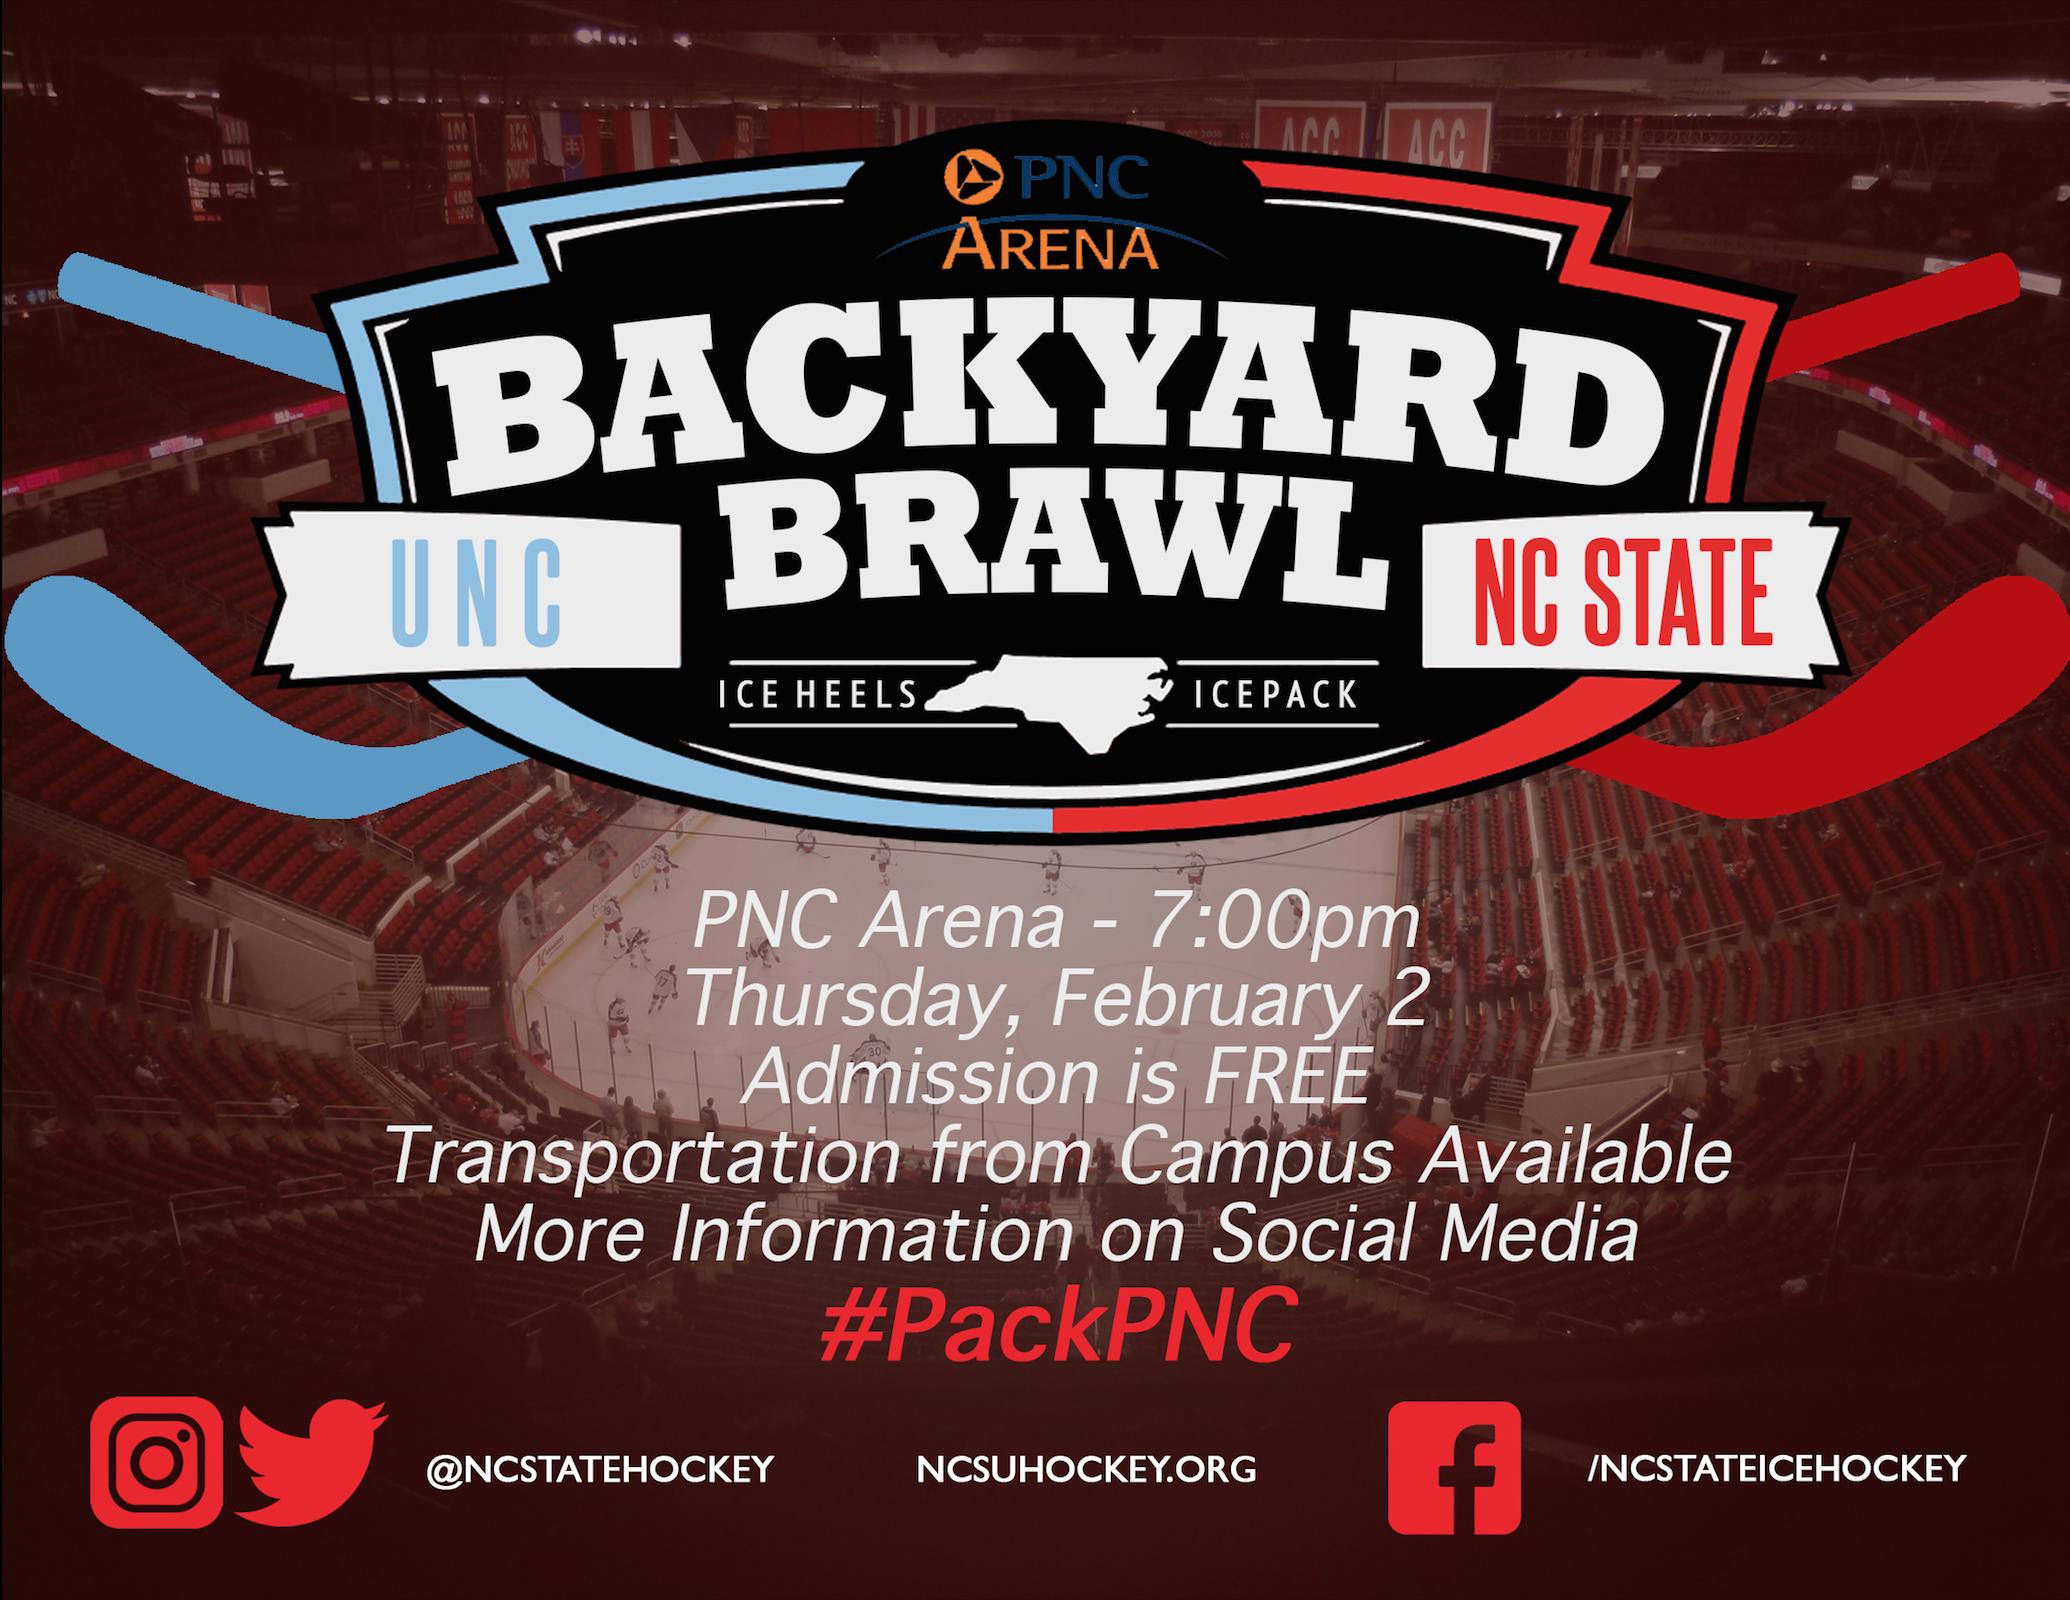 packpnc nc state ice hockey